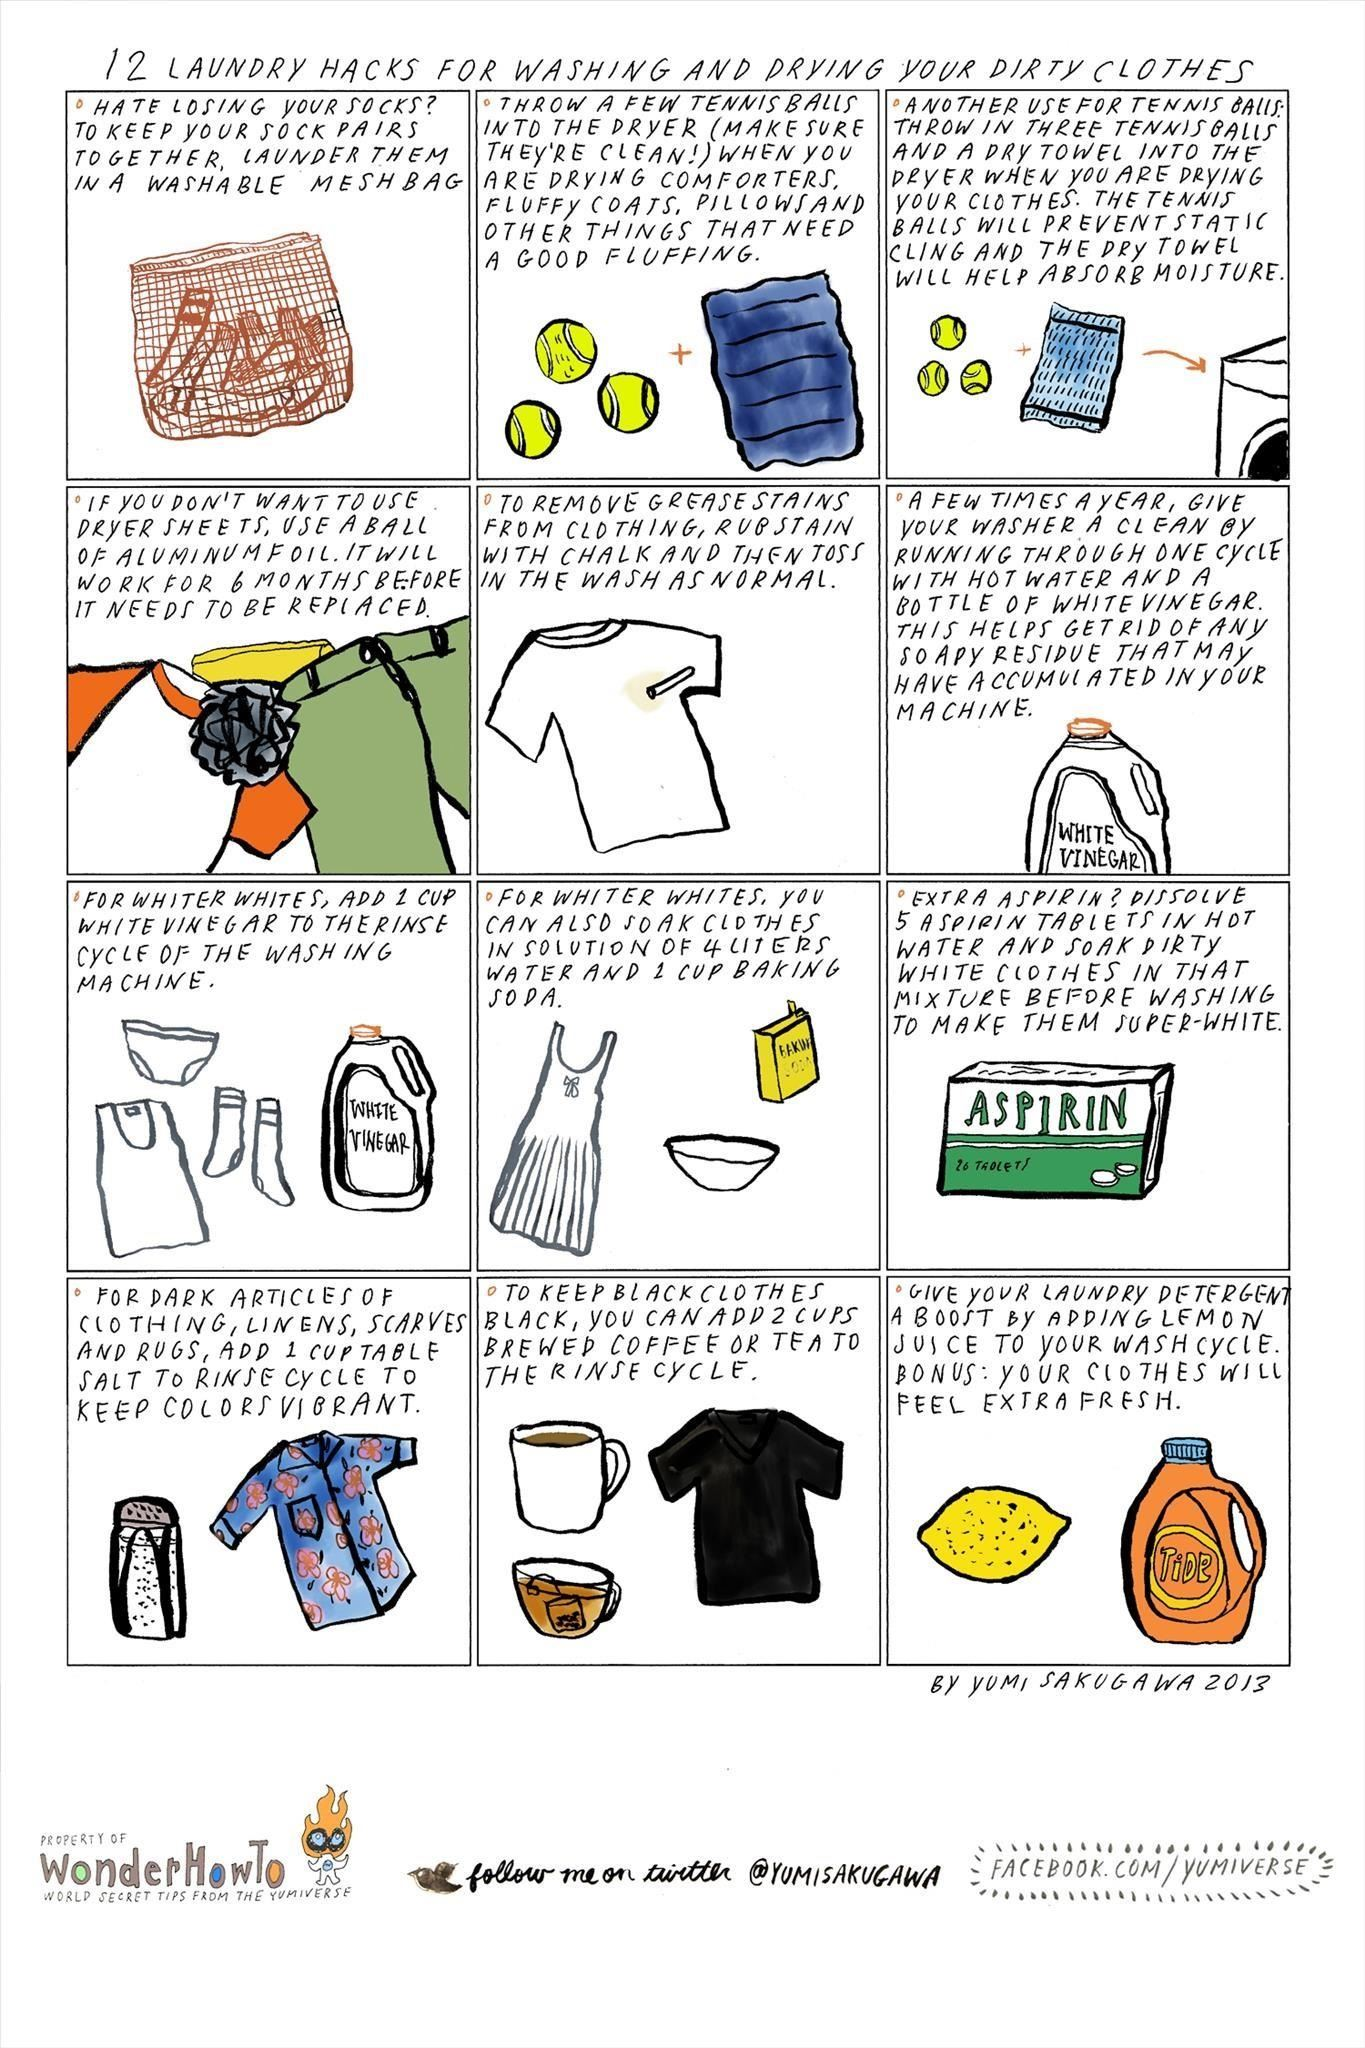 12 Laundry Hacks for Washing & Drying Your Dirty Clothes ...